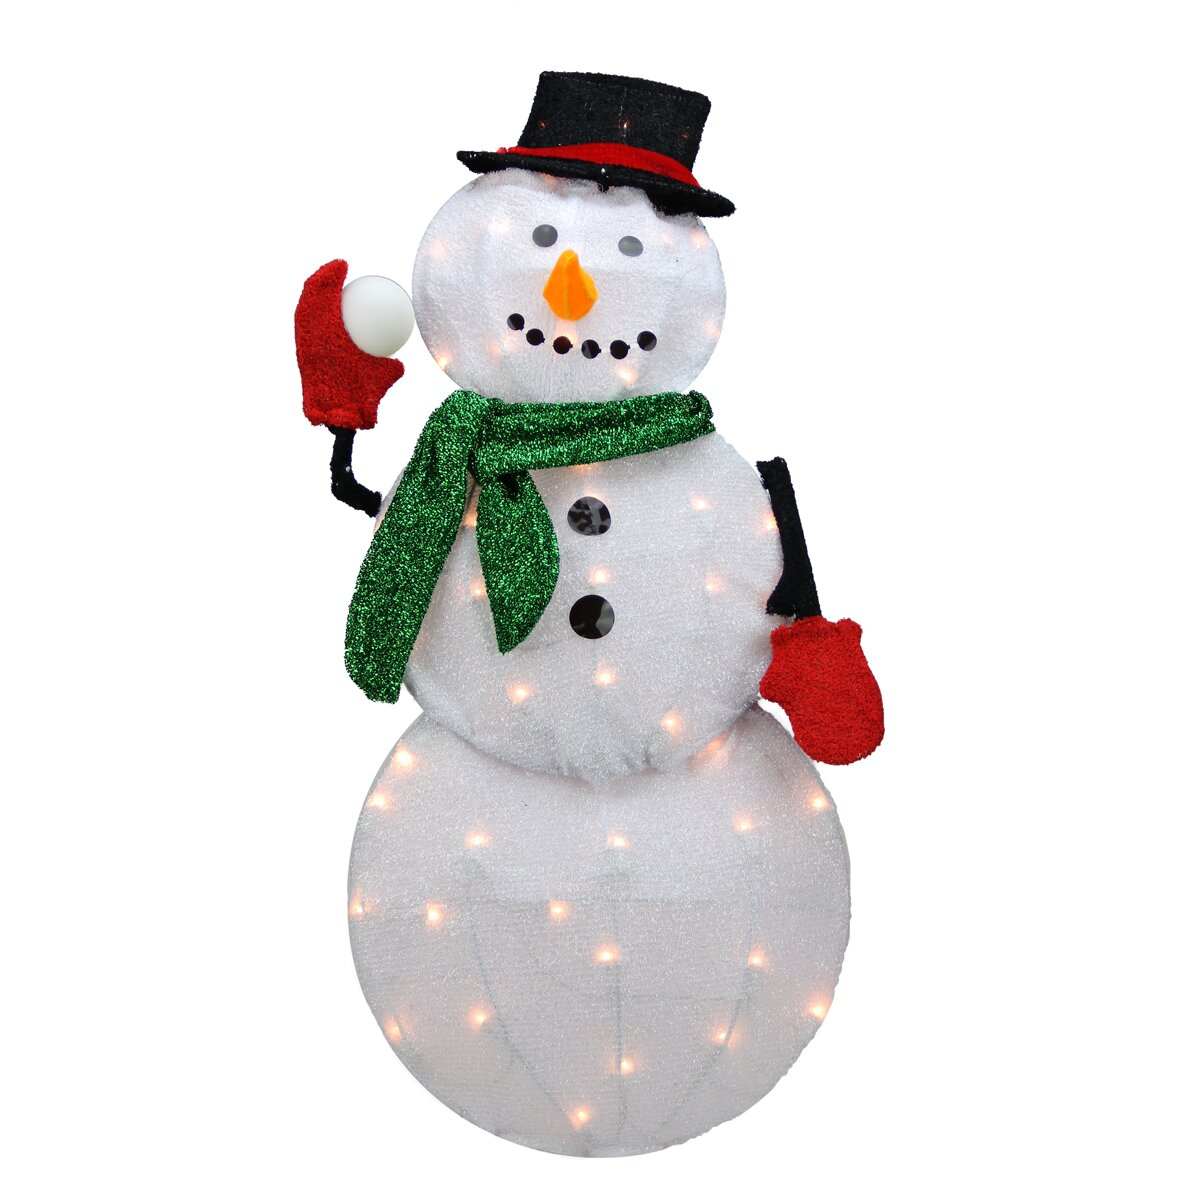 Northlight candy lane pre lit cane 2d winter snowman for Christmas snowman decorations